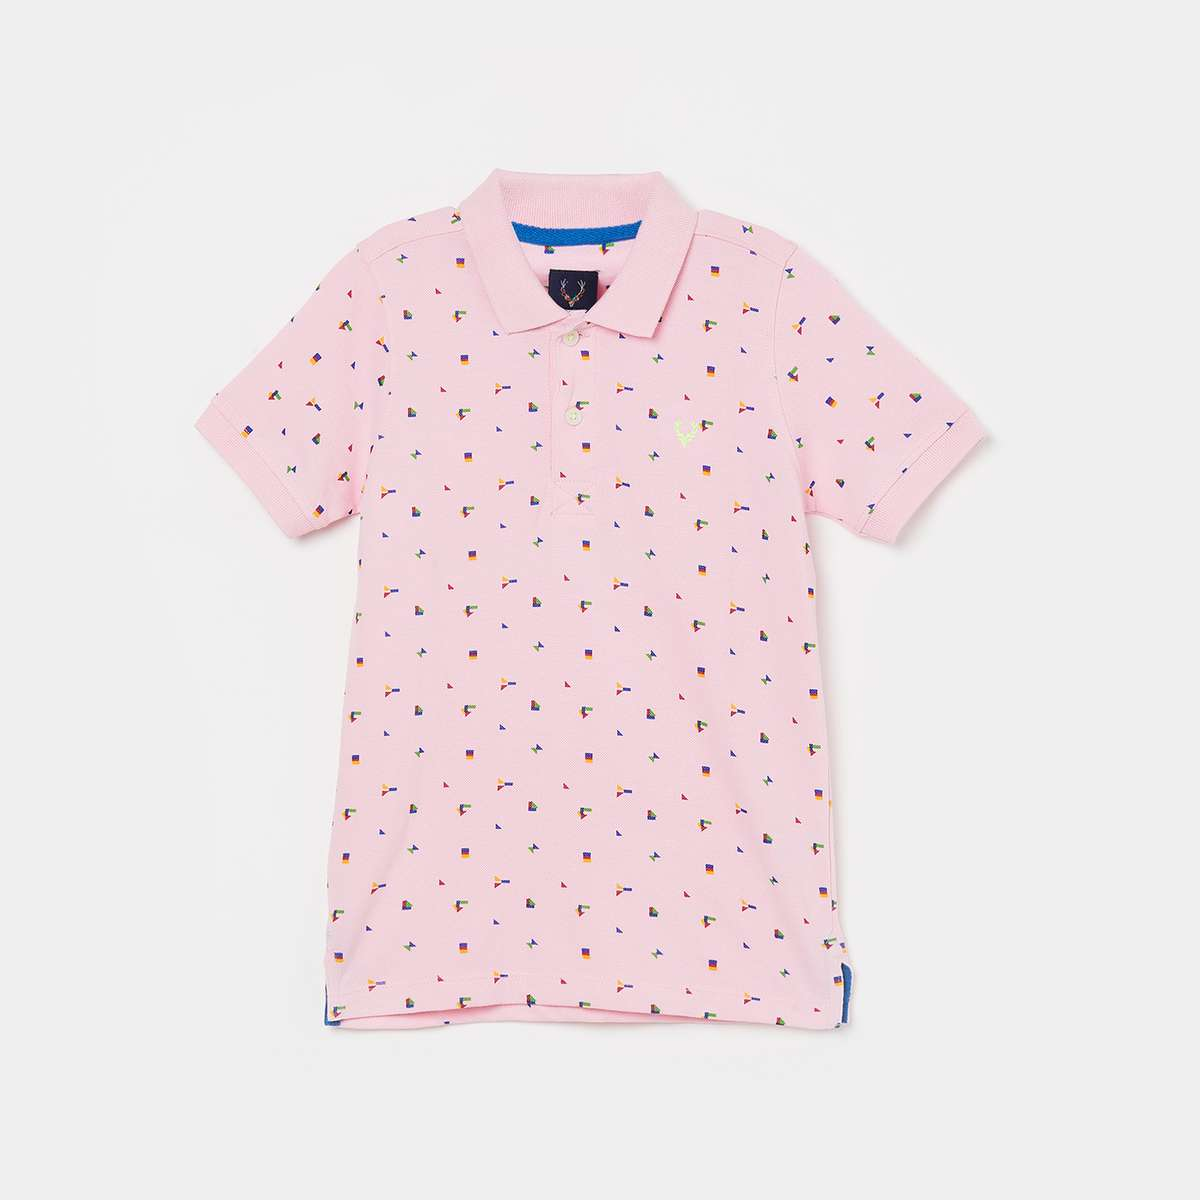 ALLEN SOLLY Boys Printed Short Sleeves Polo T-shirt